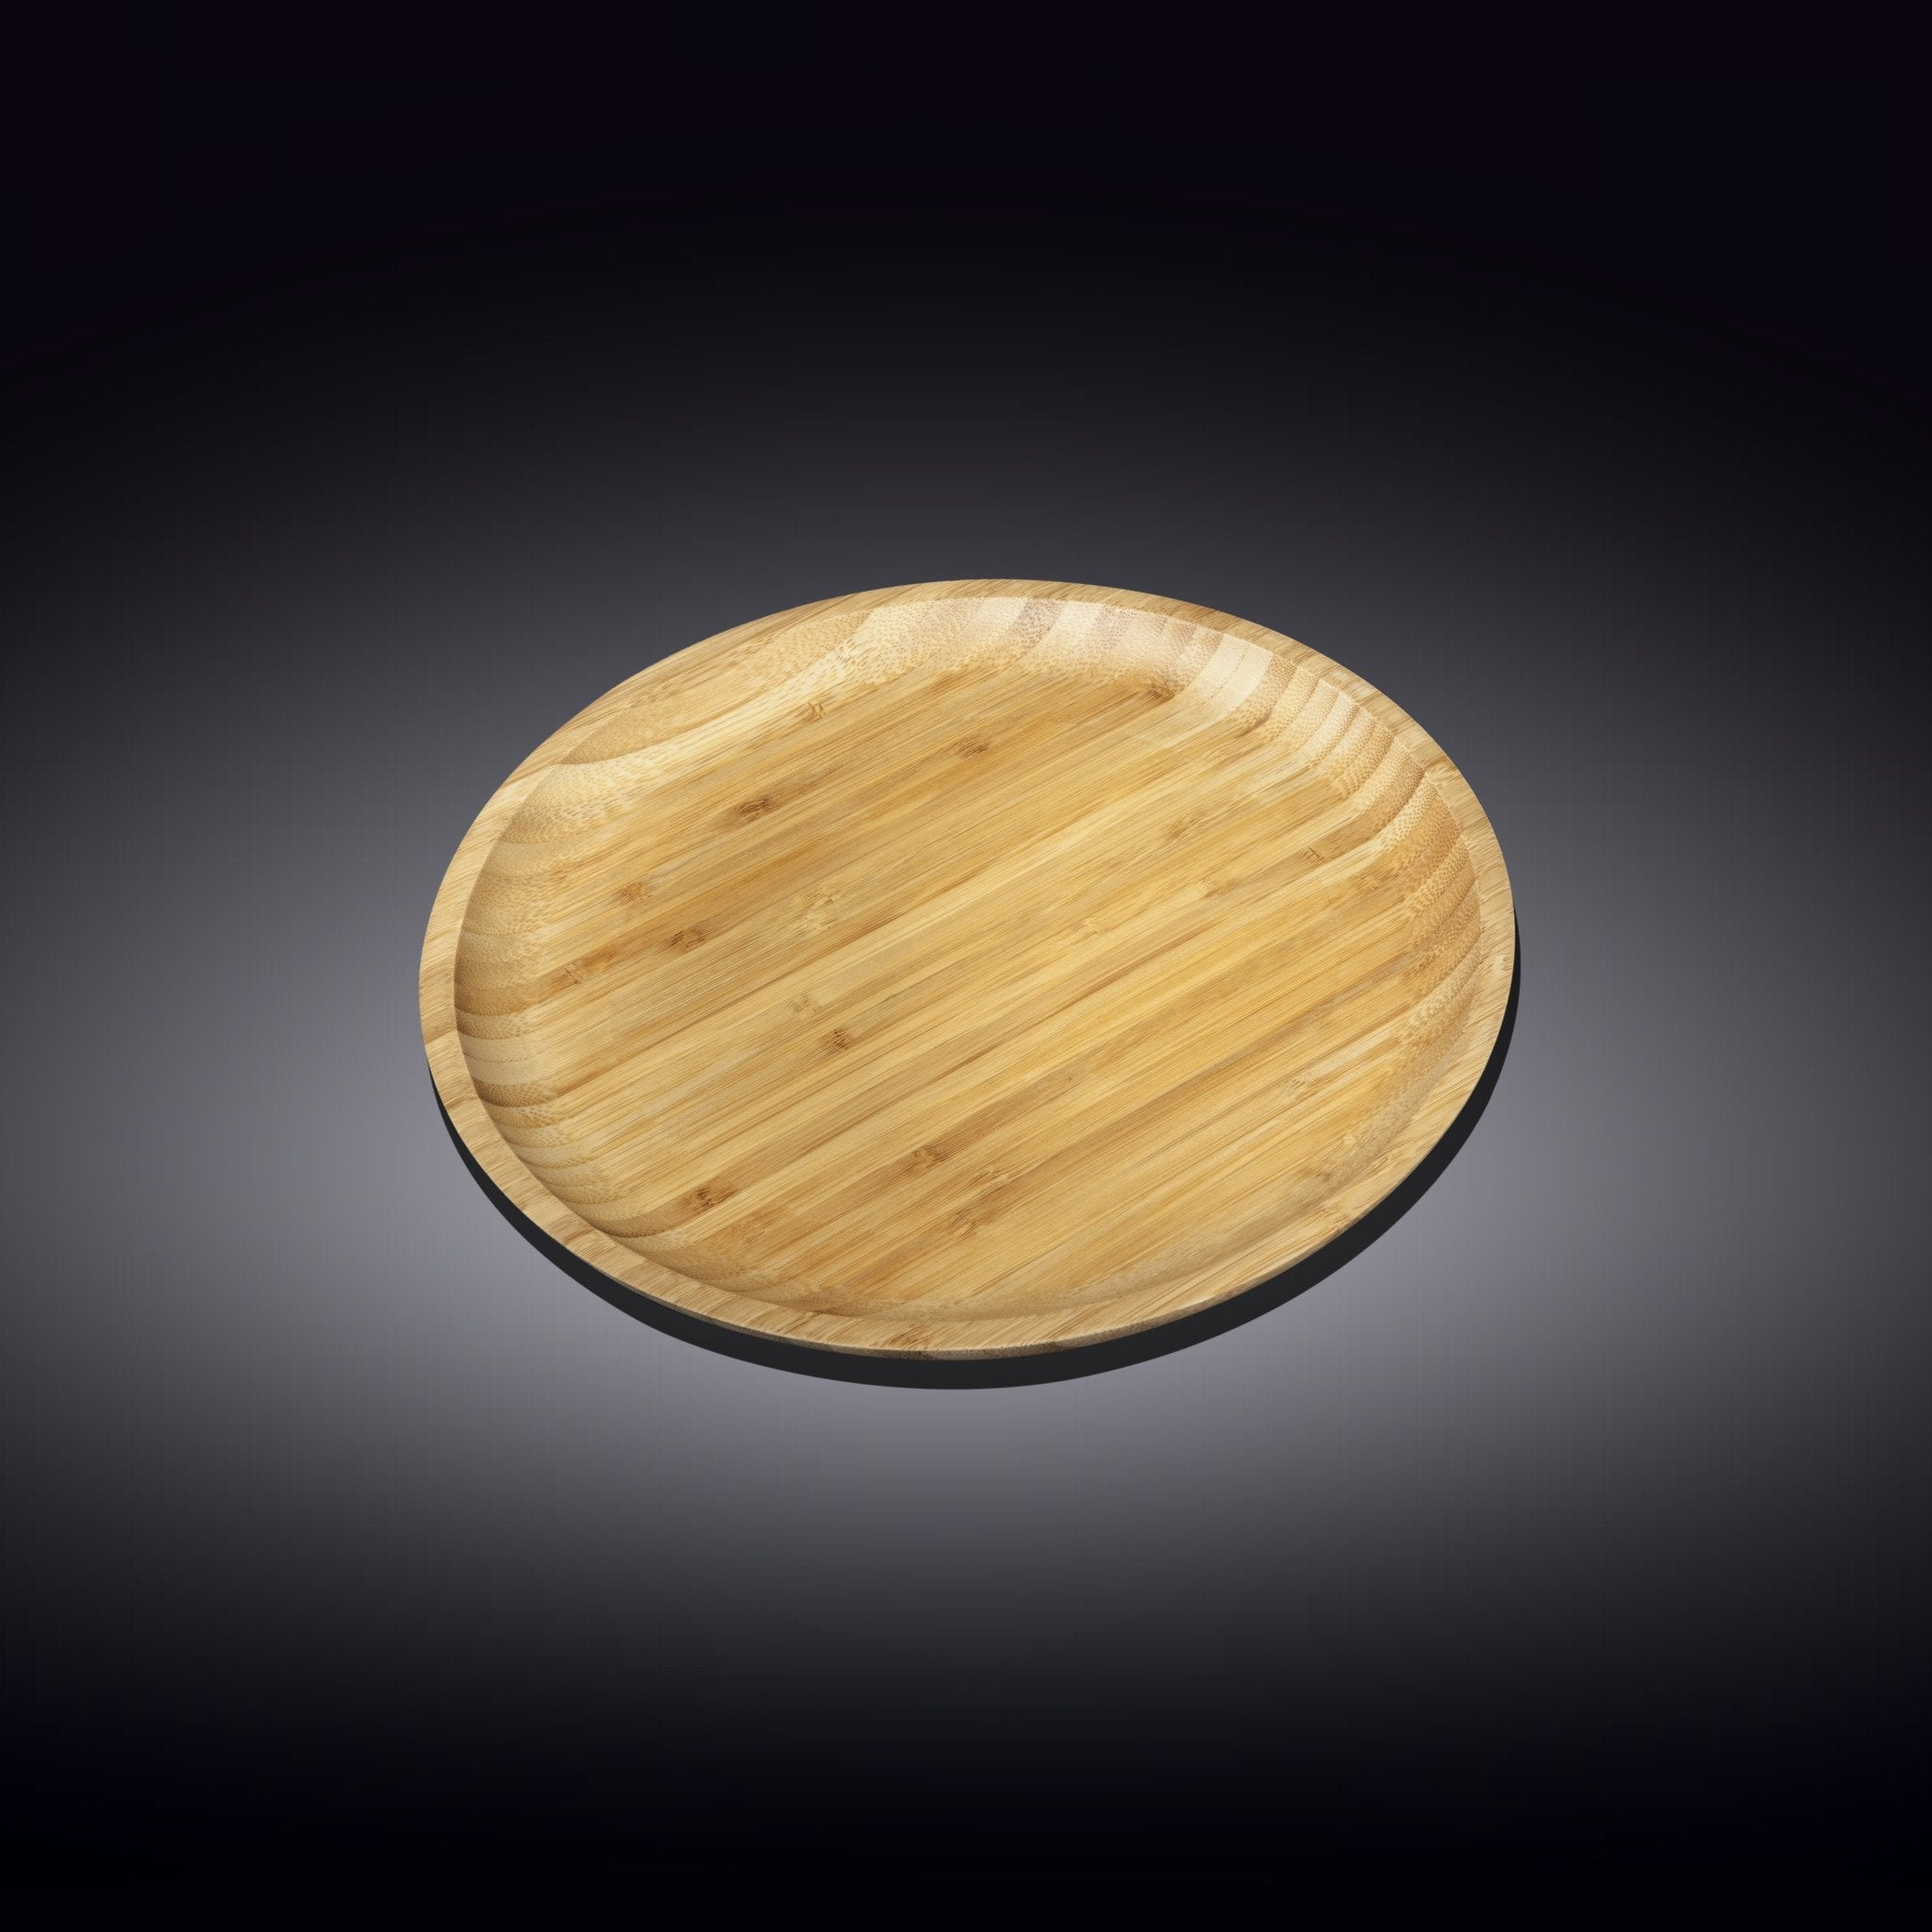 NATURAL BAMBOO PLATE 7"